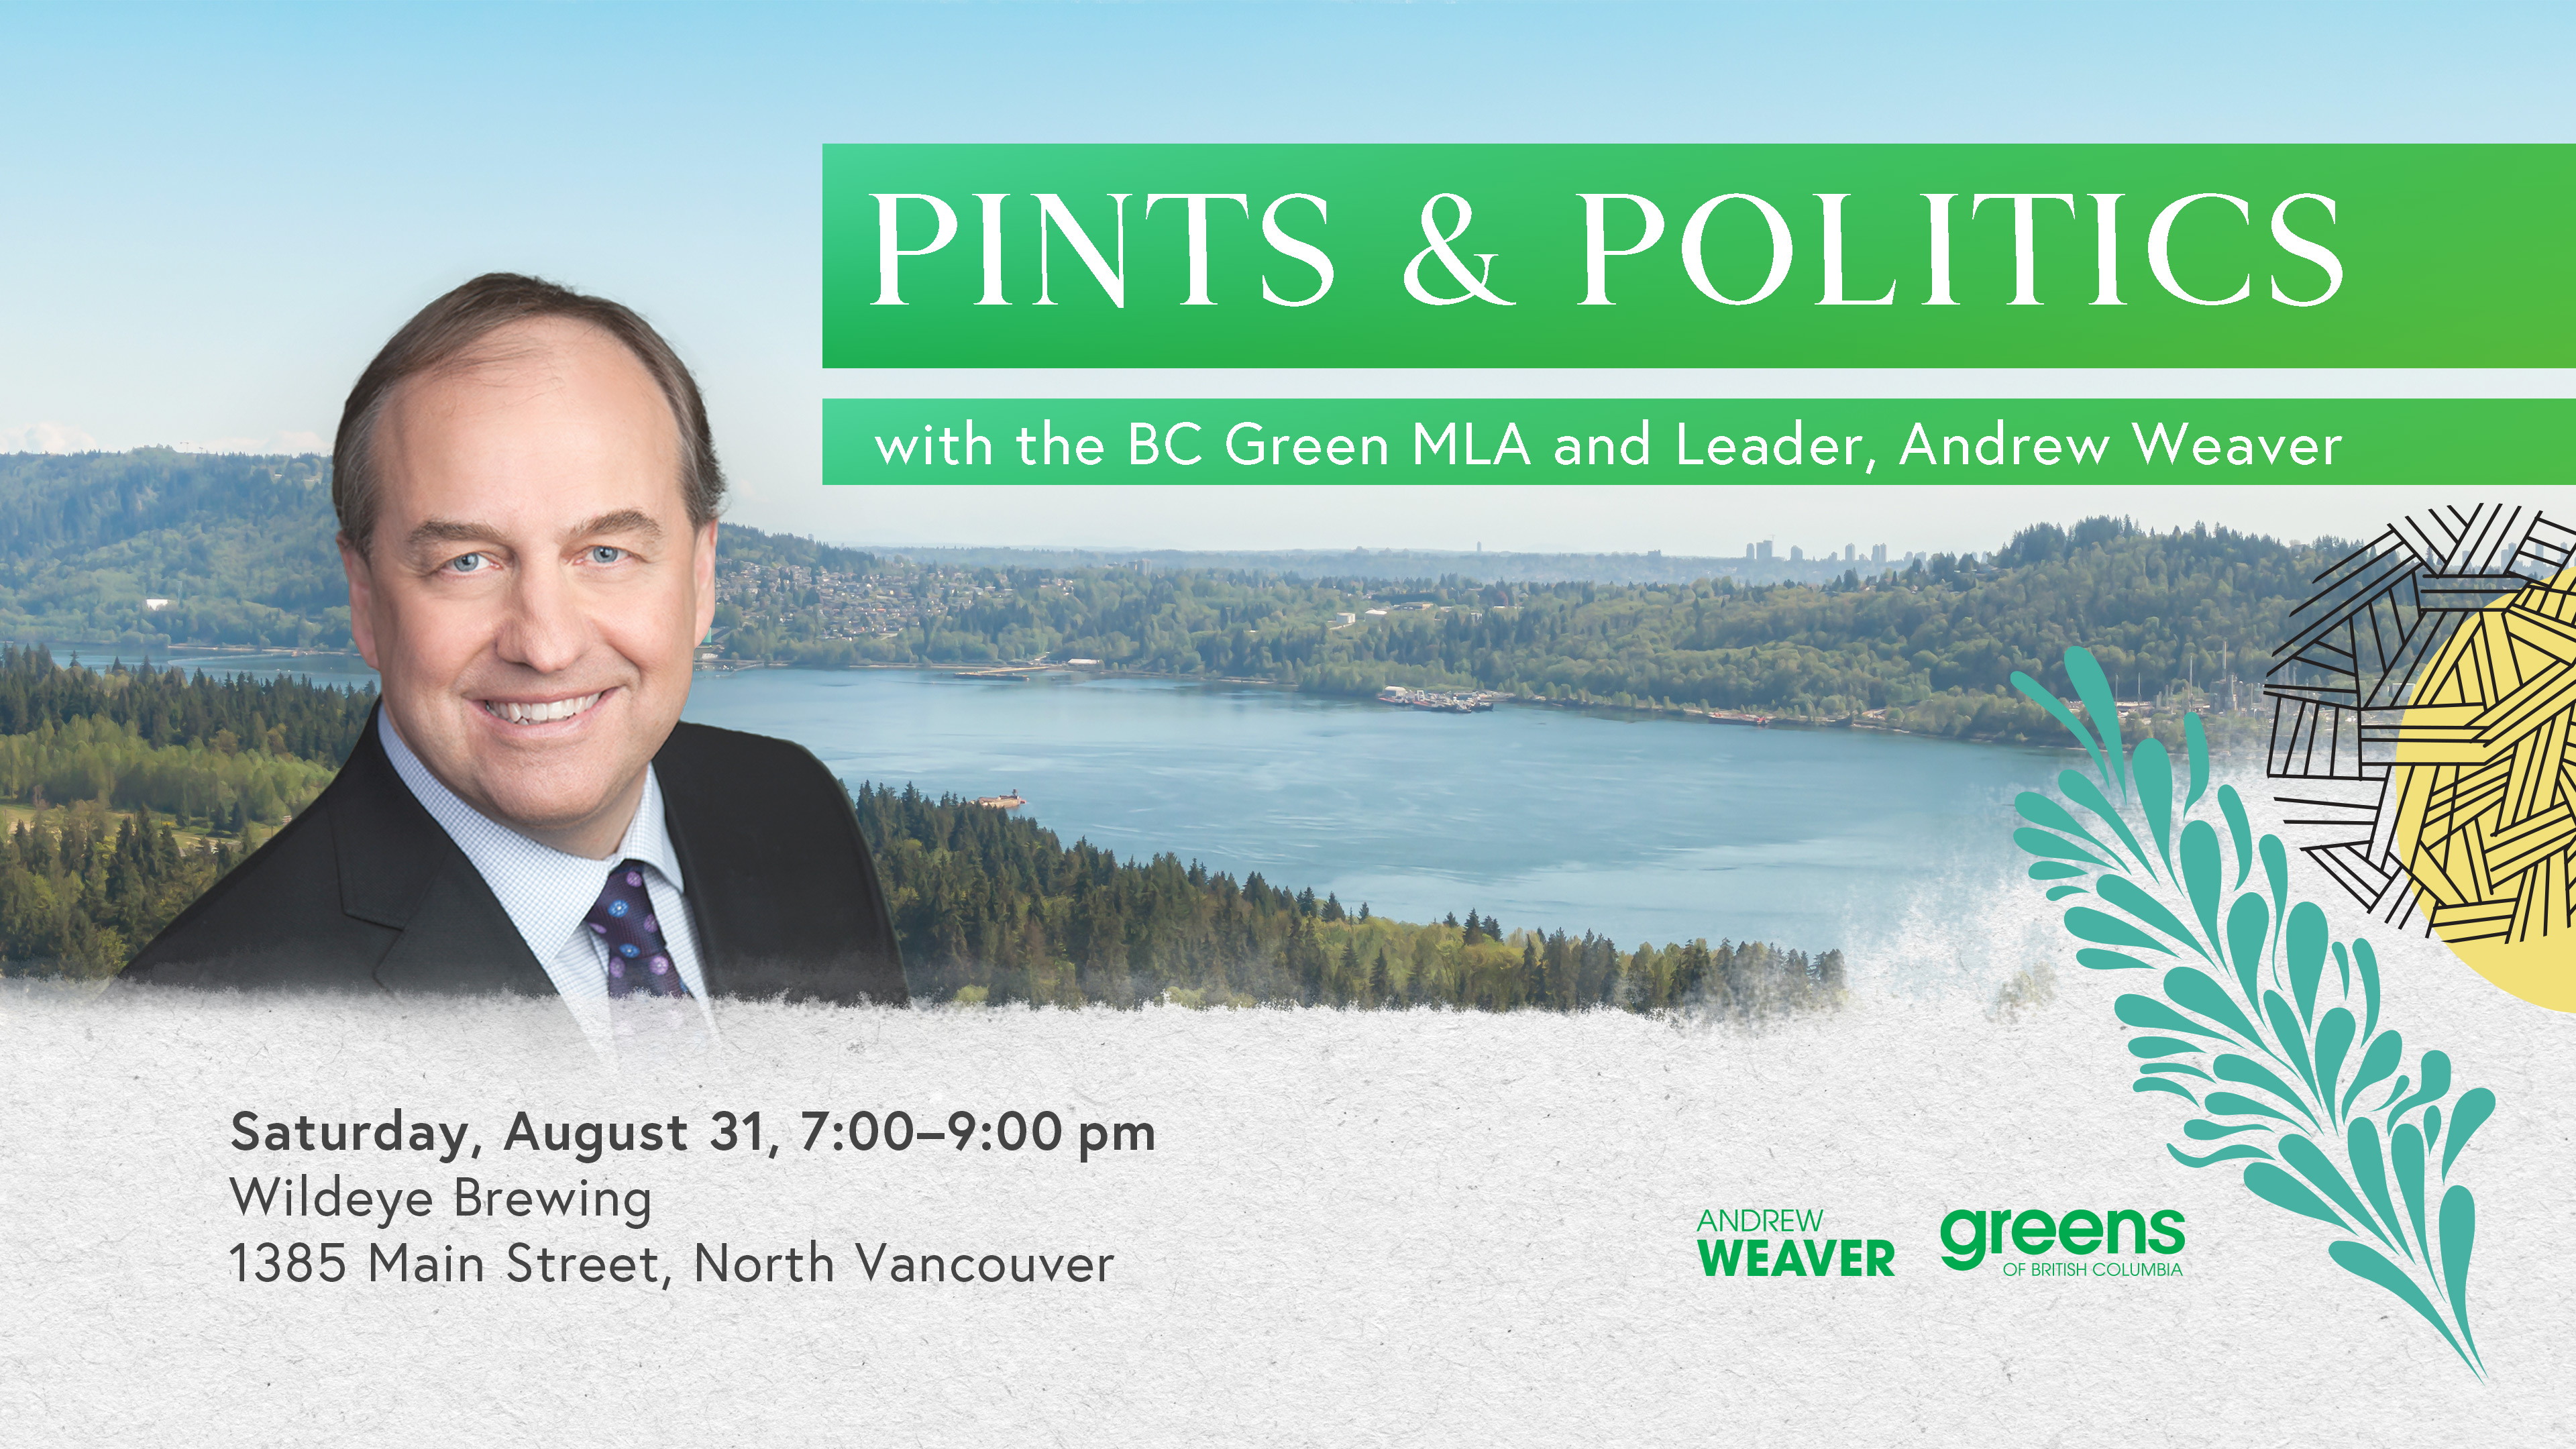 190812-North_Vancouver_-_Pints_and_Politics.jpg